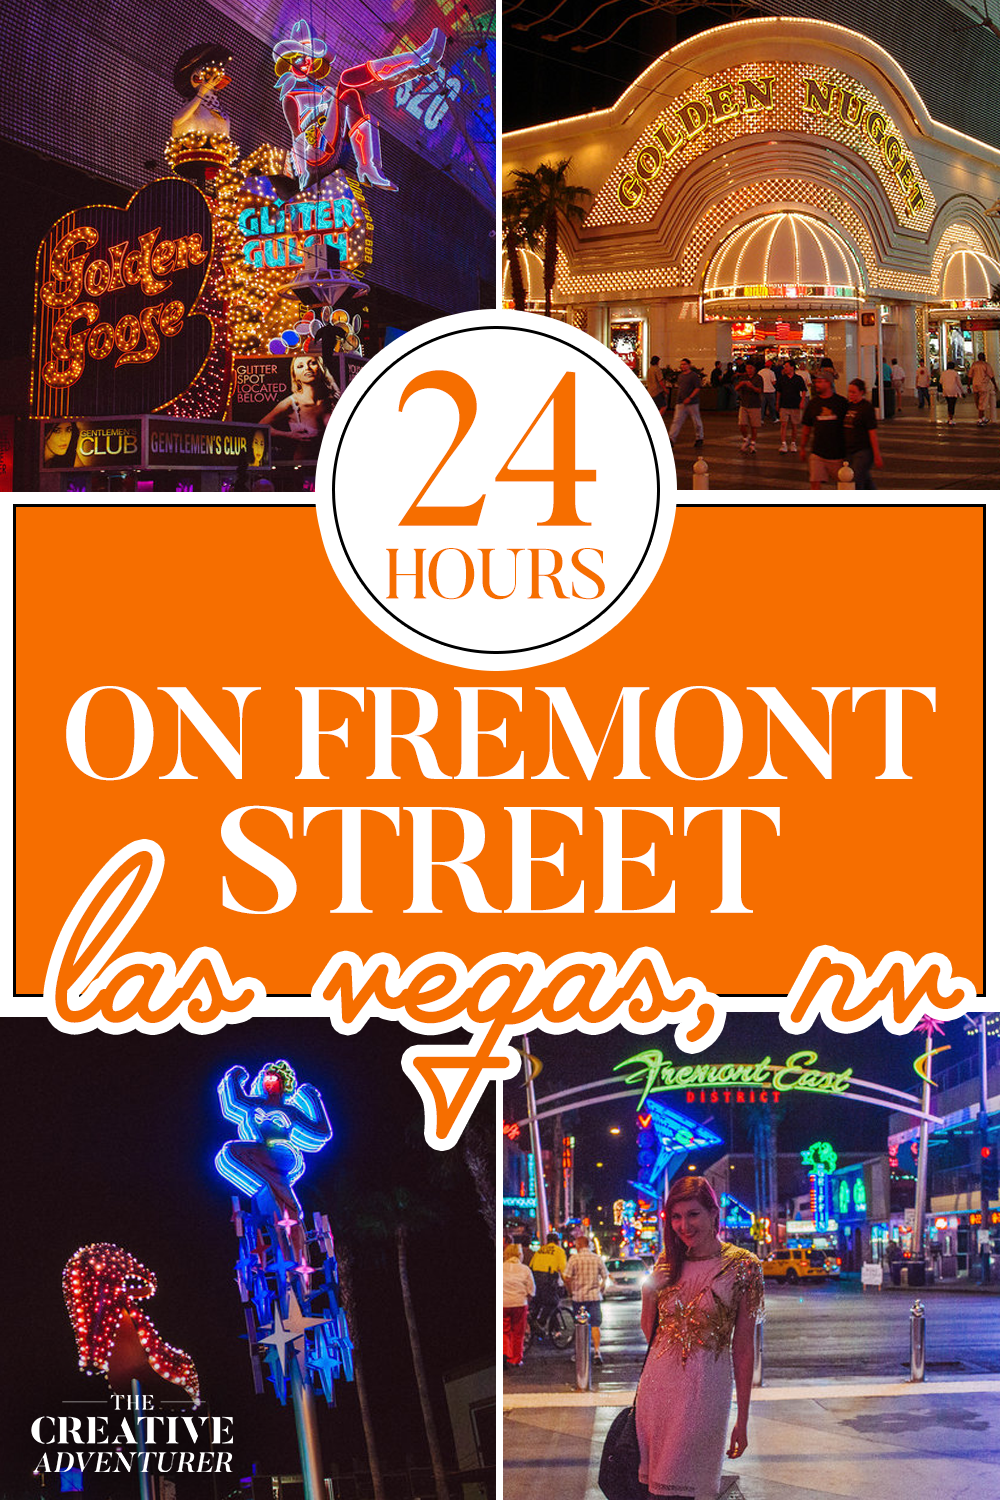 24 Hours on Fremont Street Las Vegas